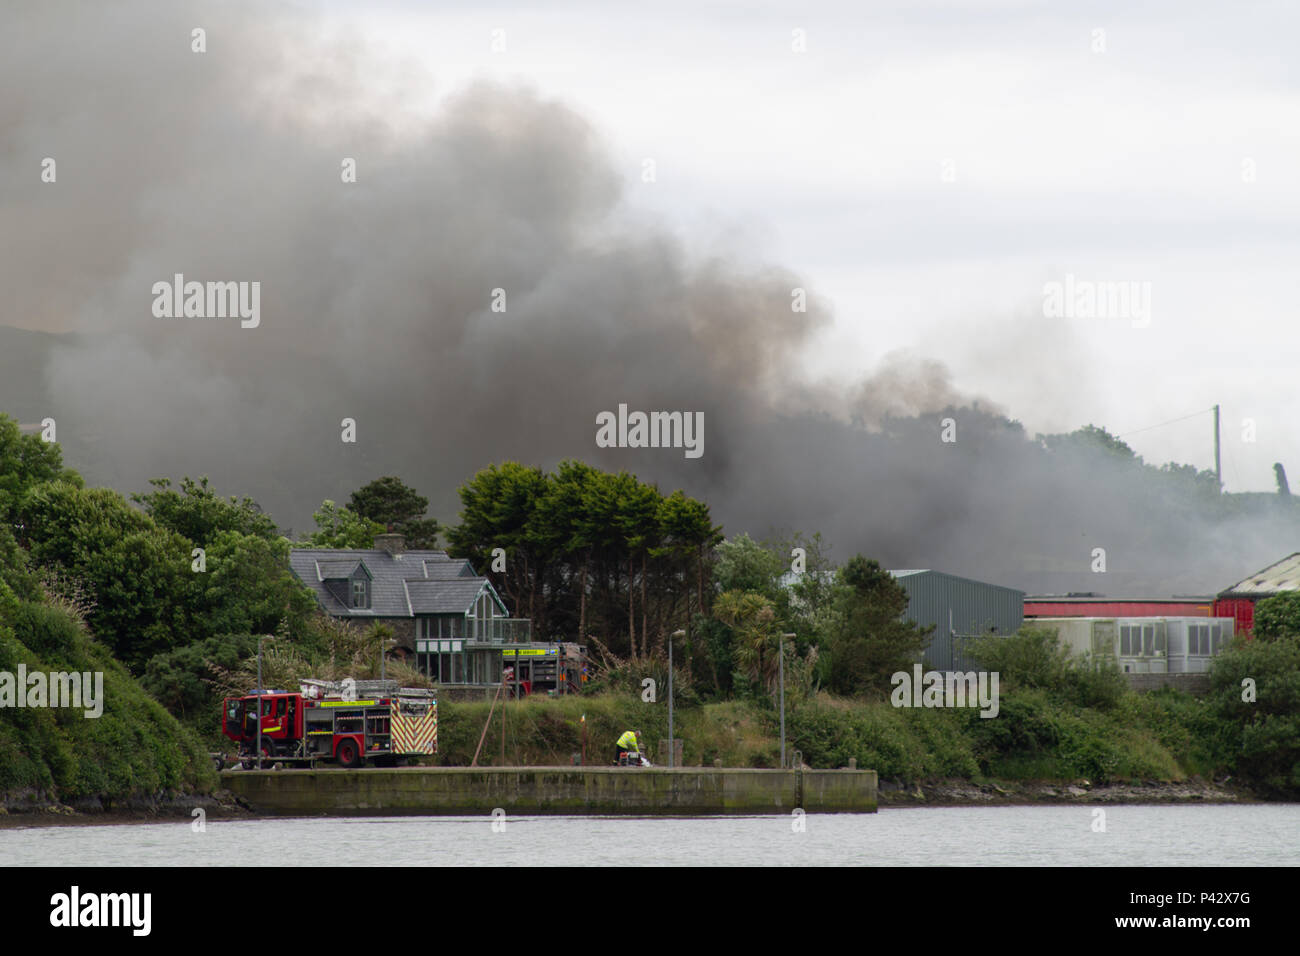 baltimore-ireland-20th-june-2018-a-large-fire-in-the-fish-factory-near-baltimore-today-caused-the-evacuation-of-the-local-school-huge-plumes-of-toxic-smoke-were-carried-towards-the-school-causing-the-evacuation-fire-appliances-from-all-over-the-local-area-attended-as-firemen-battled-to-control-the-blaze-local-roads-were-closed-with-diversions-in-place-but-no-casualties-were-reported-credit-aphperspectivealamy-live-news-P42X7G.jpg